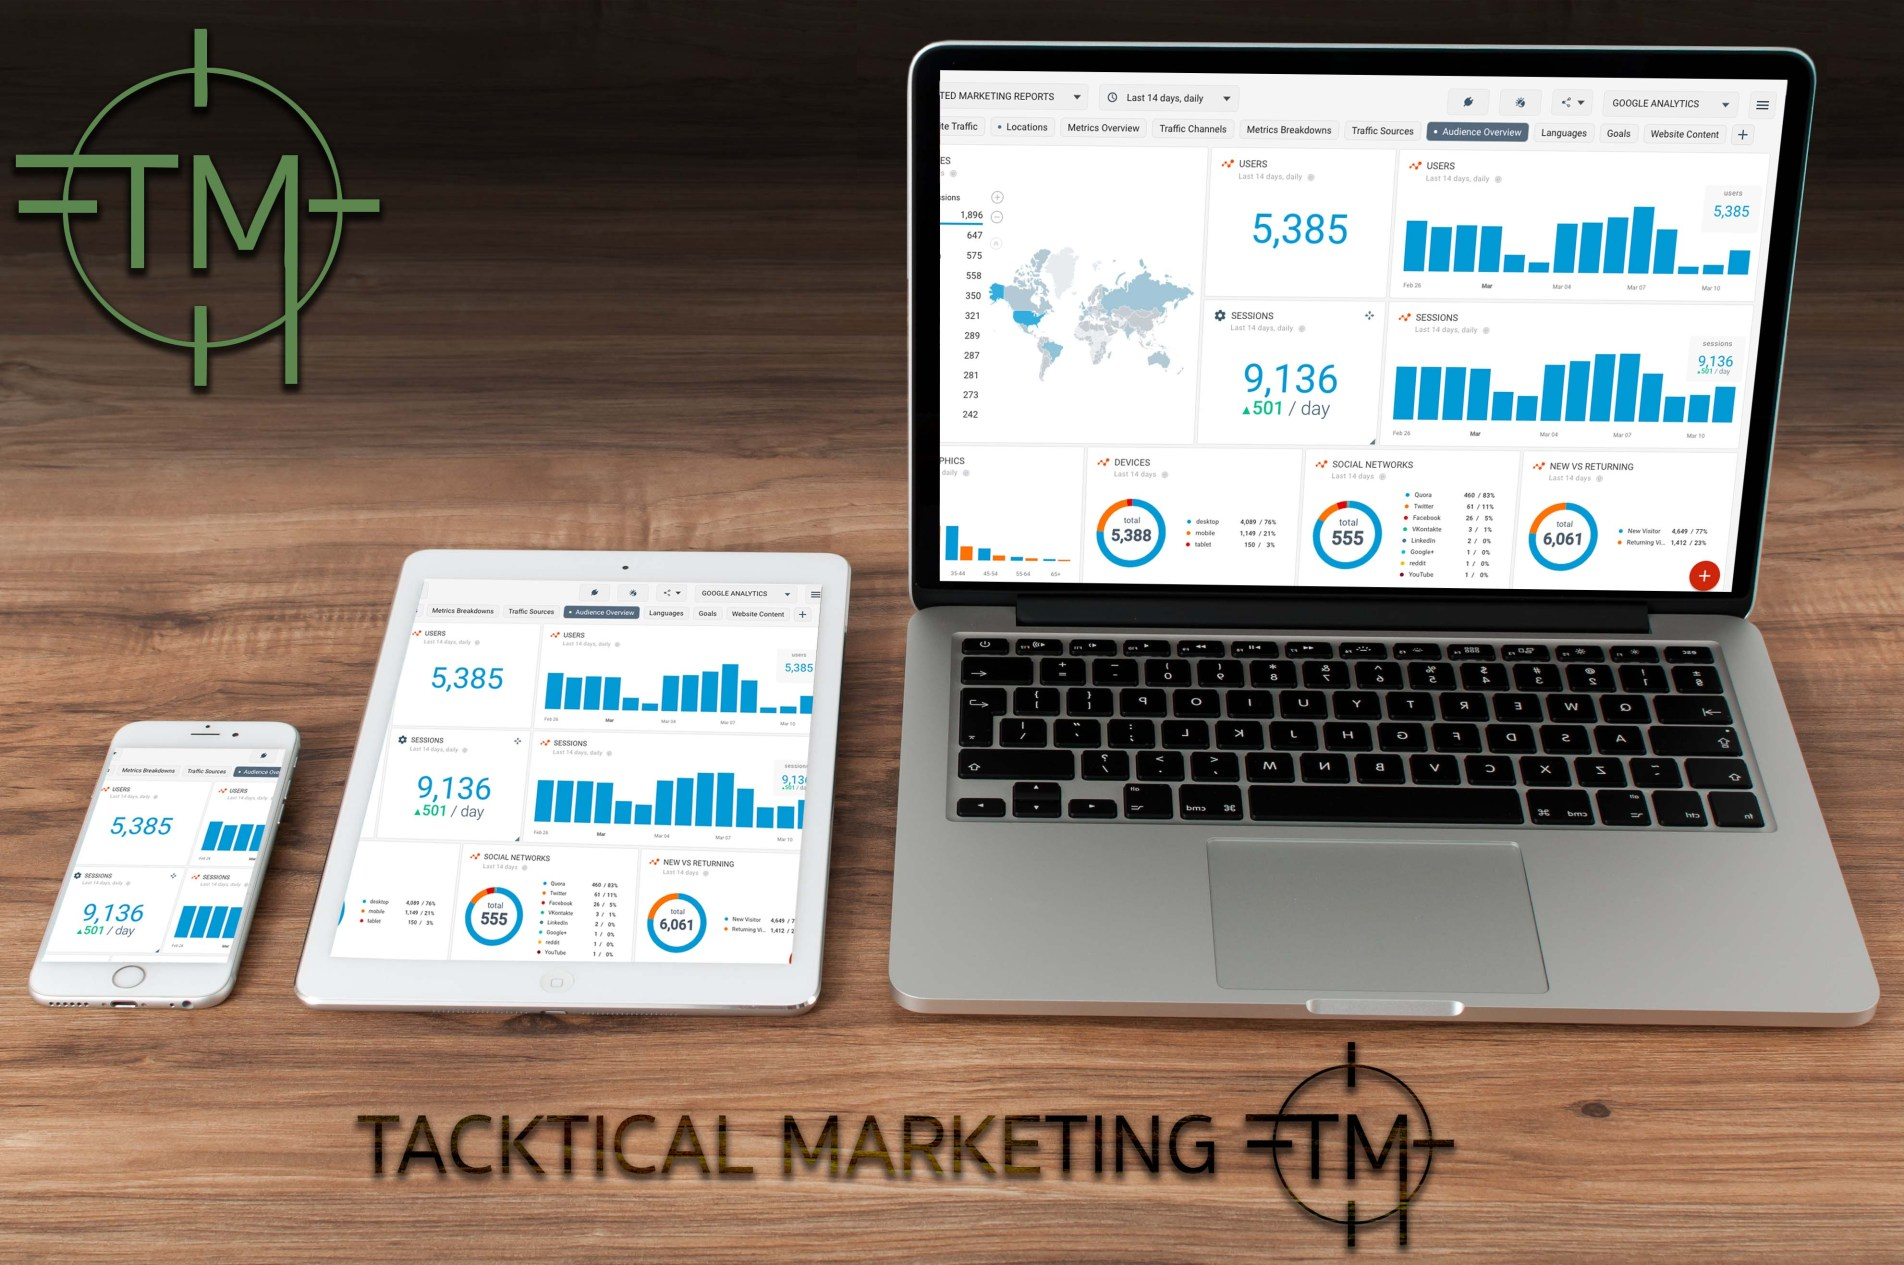 Tacktical Marketing | Full Service Marketing Agency | Manufacturing and Professional Services | Website Building Advertising Management | Google PPC, Bing, Facebook | WordStream Keyword Planning & Optimization | SEMRush - Website Mapping | URL structure | Automation (Ontraport) | Consulting | Banners / Graphics / Signs Wraps / Decals / Stickers Embroidery | Logo